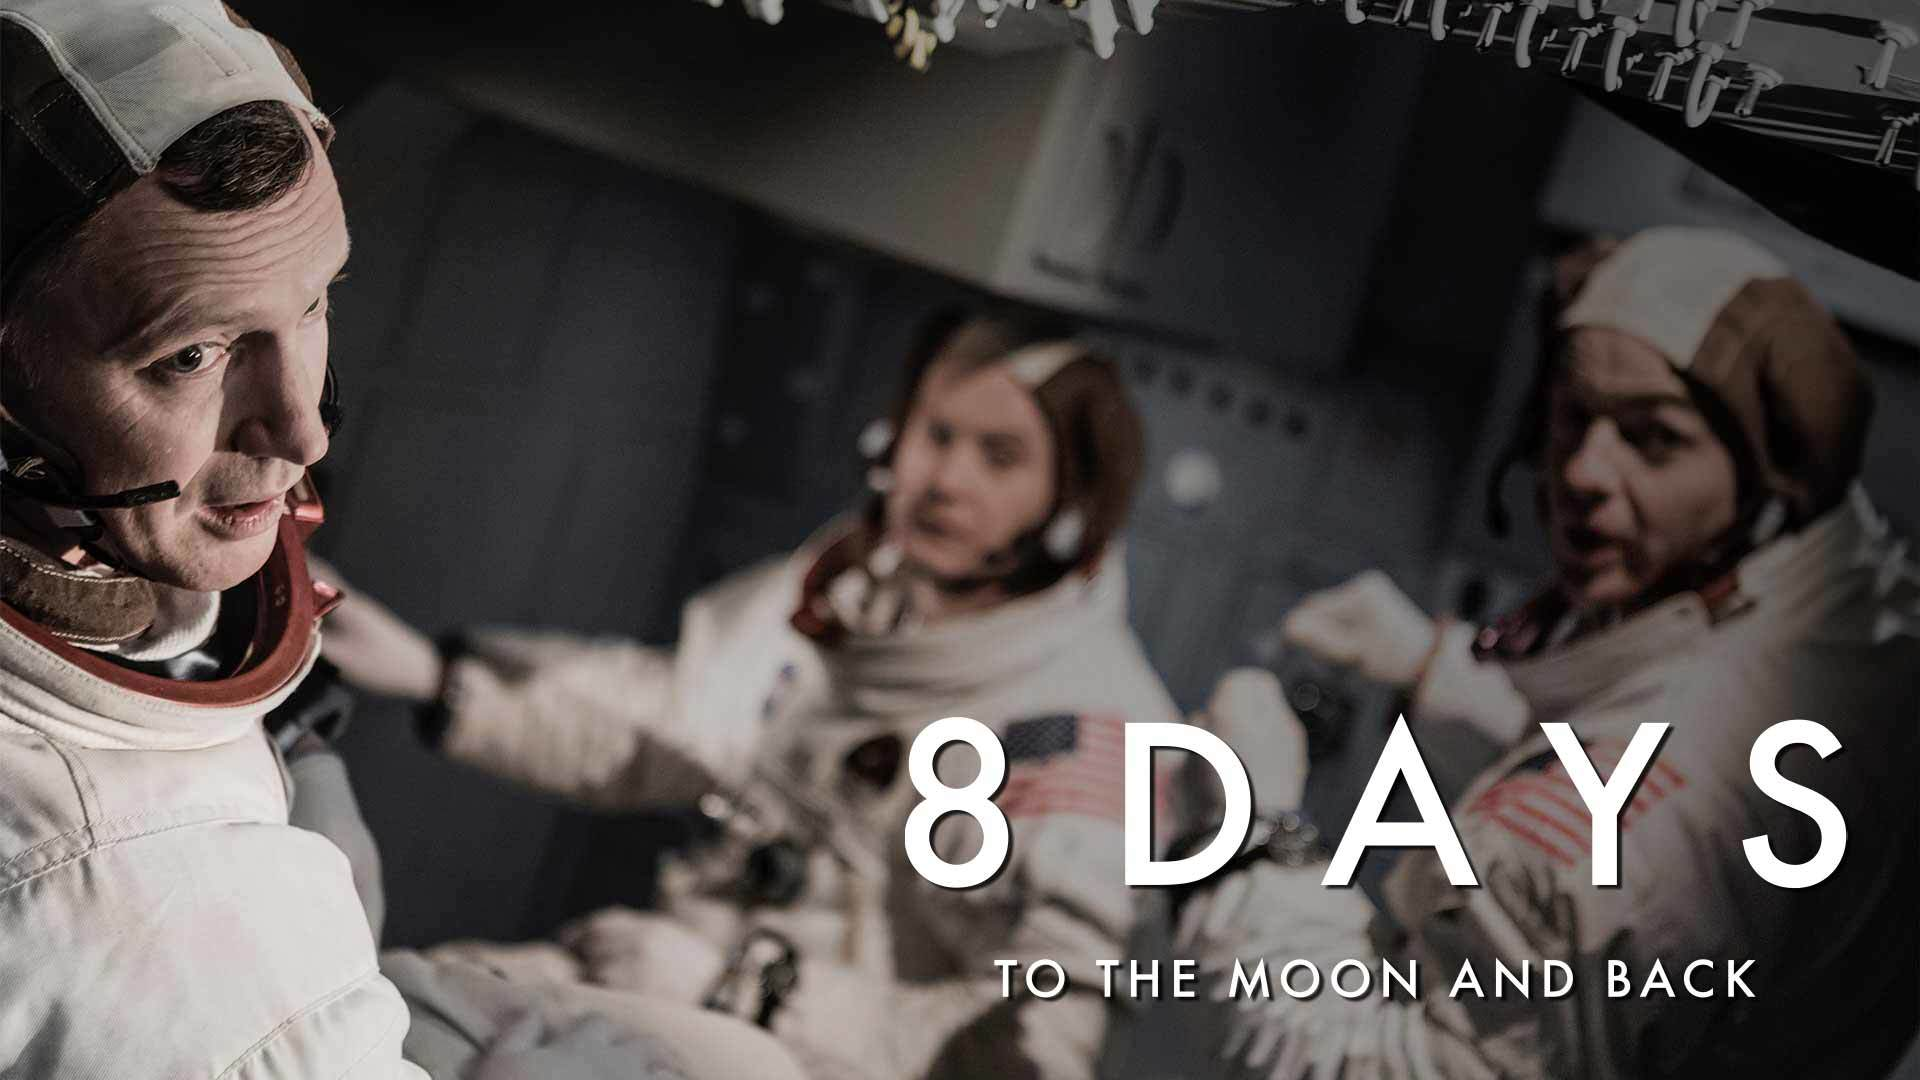 Image from 8 Days: To the Moon and Back